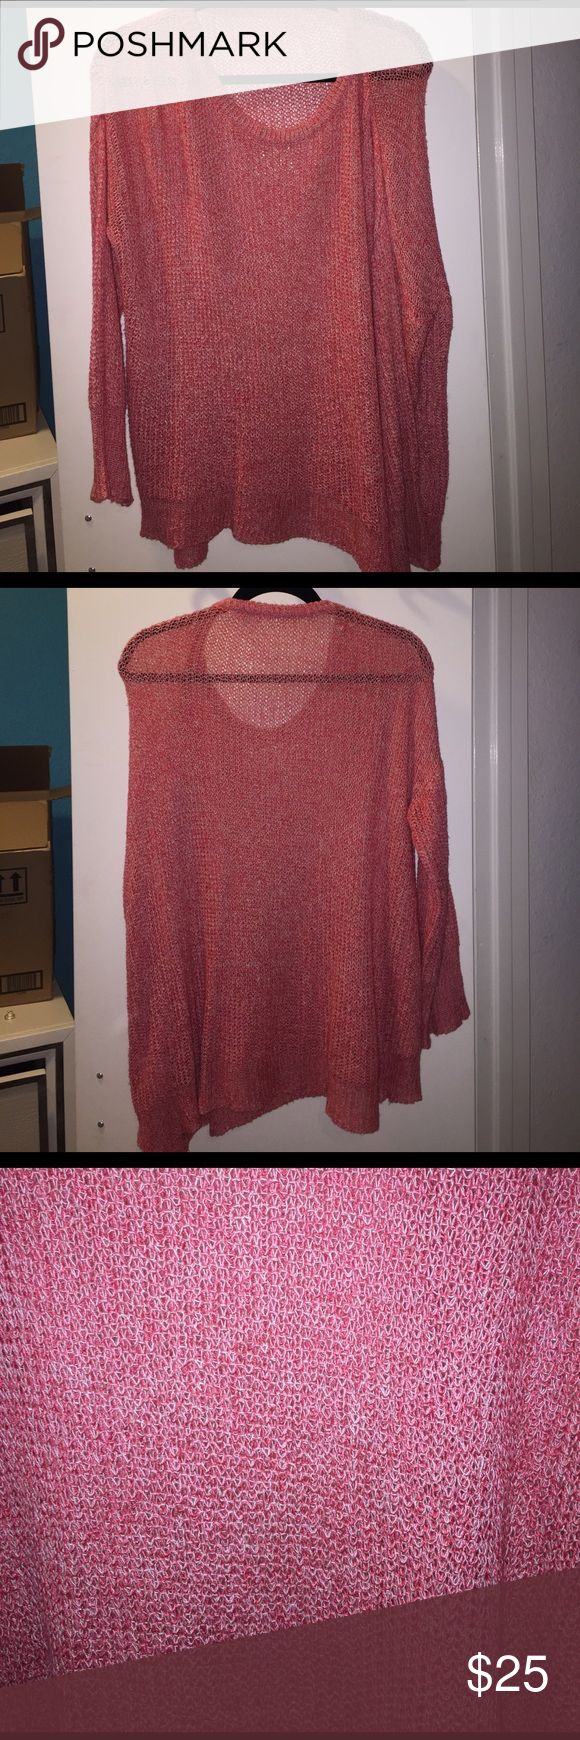 Brandy Melville sweater Pink and white knit brandy Melville sweater. The size is one size fits all, I'm typically a small in things and this is the perfect sweater with leggings! Brandy Melville Sweaters